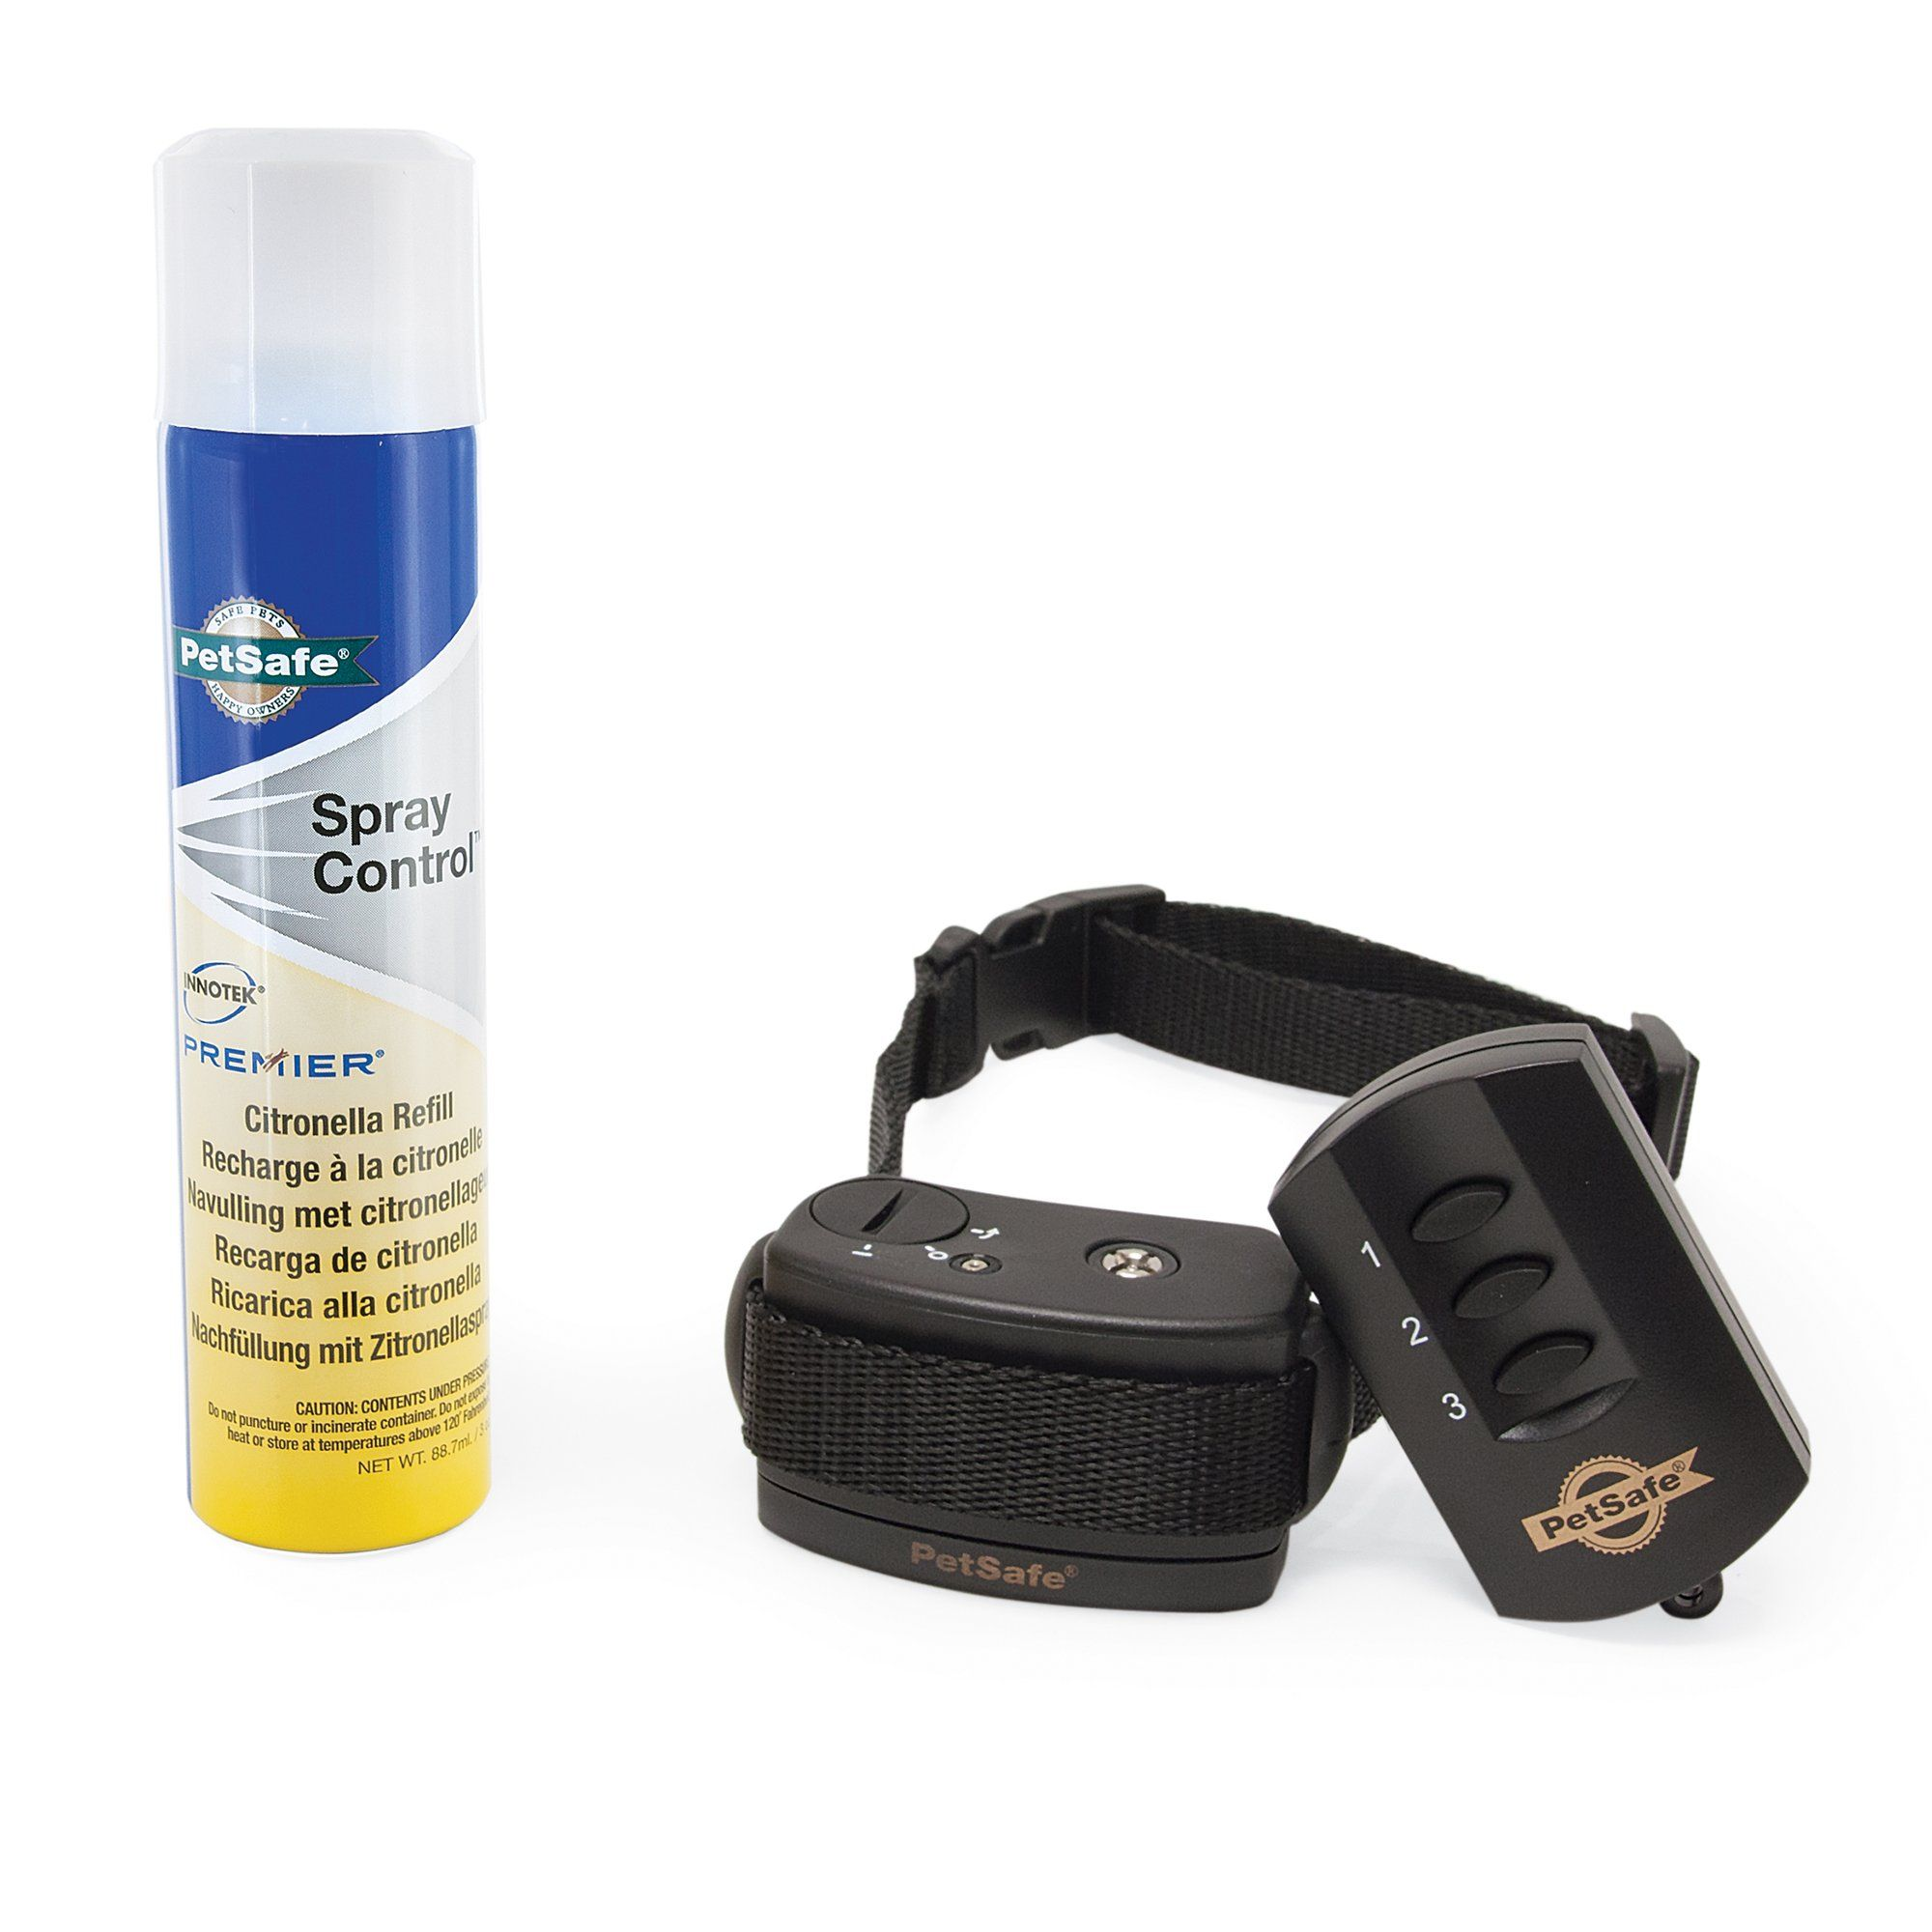 With the PetSafe Spray Commander Dog Trainer's 2 levels of